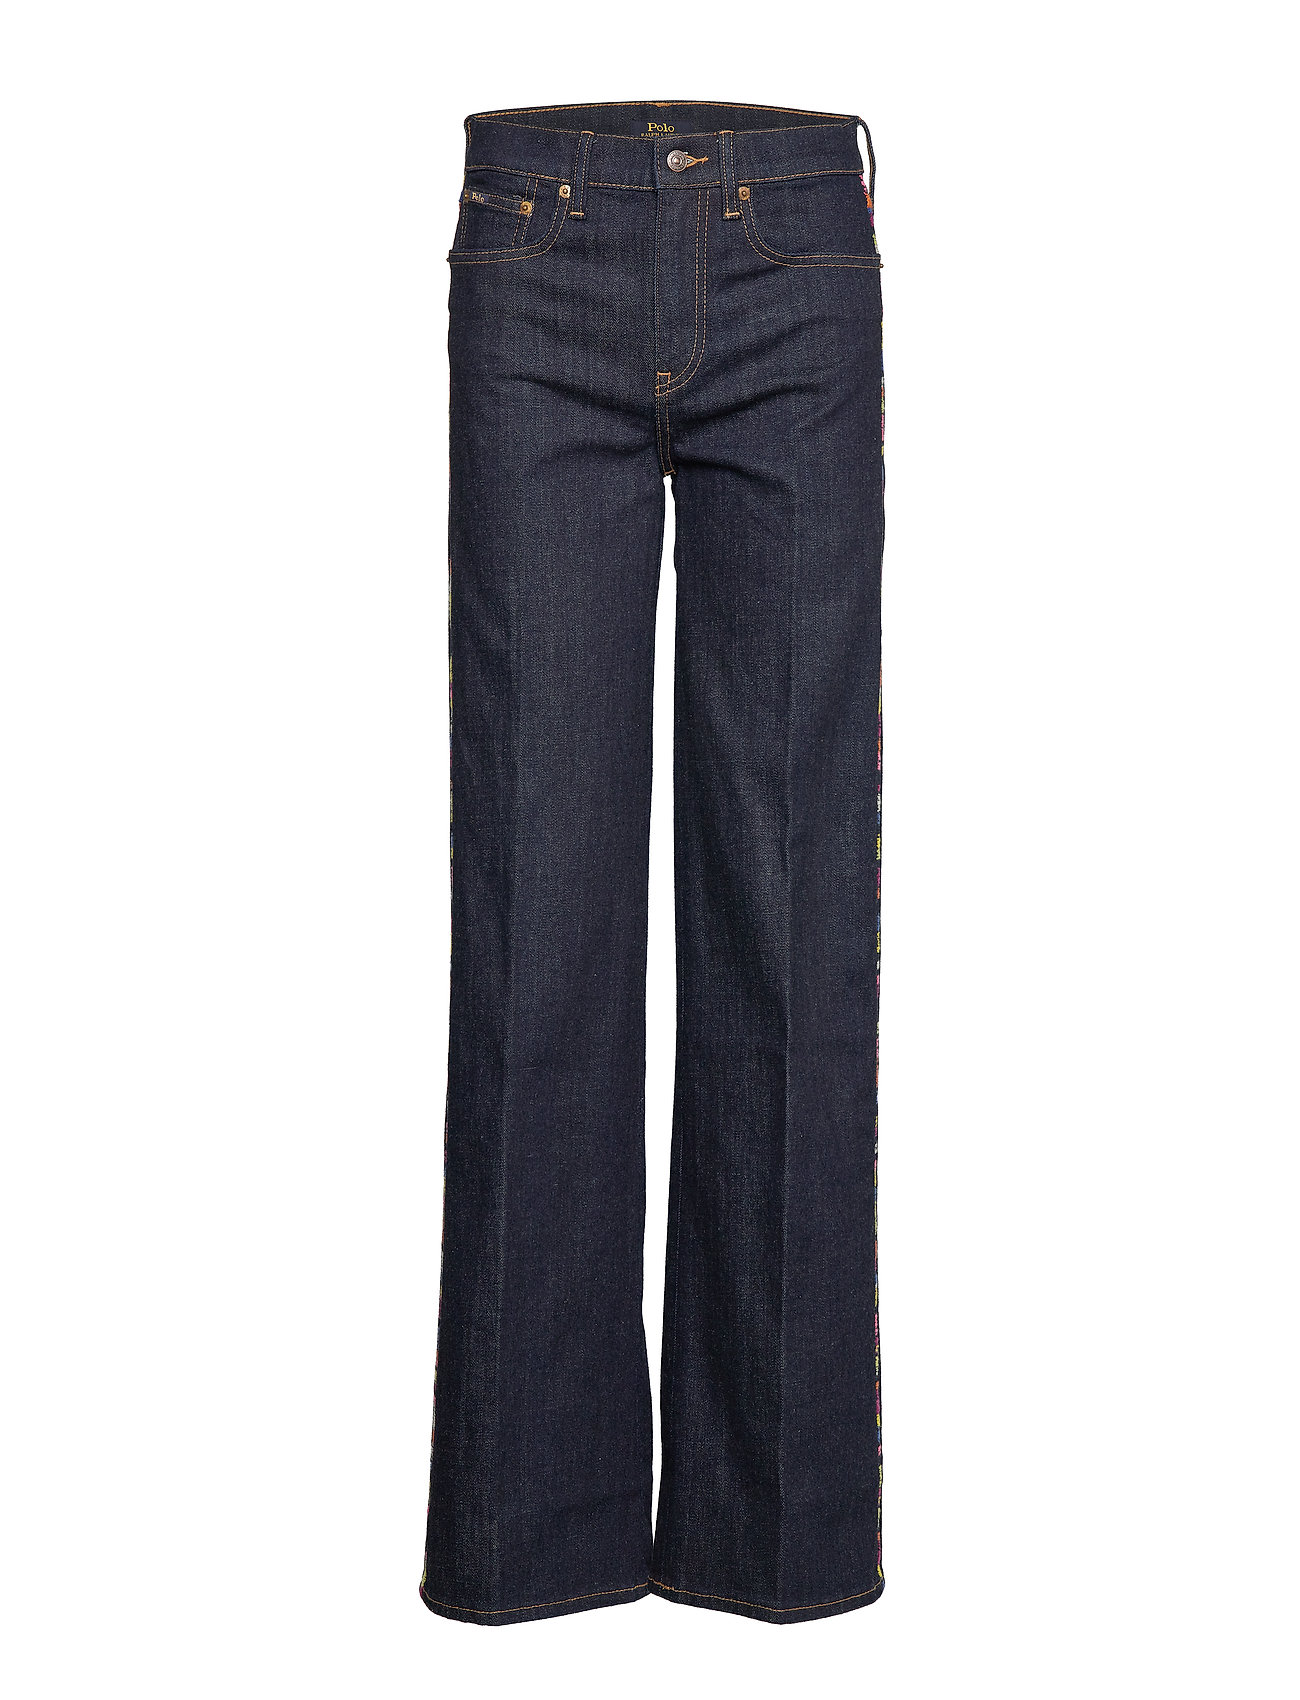 Polo Ralph Lauren Ulta Stretch Wide-Leg Jean - DARK INDIGO W RAI